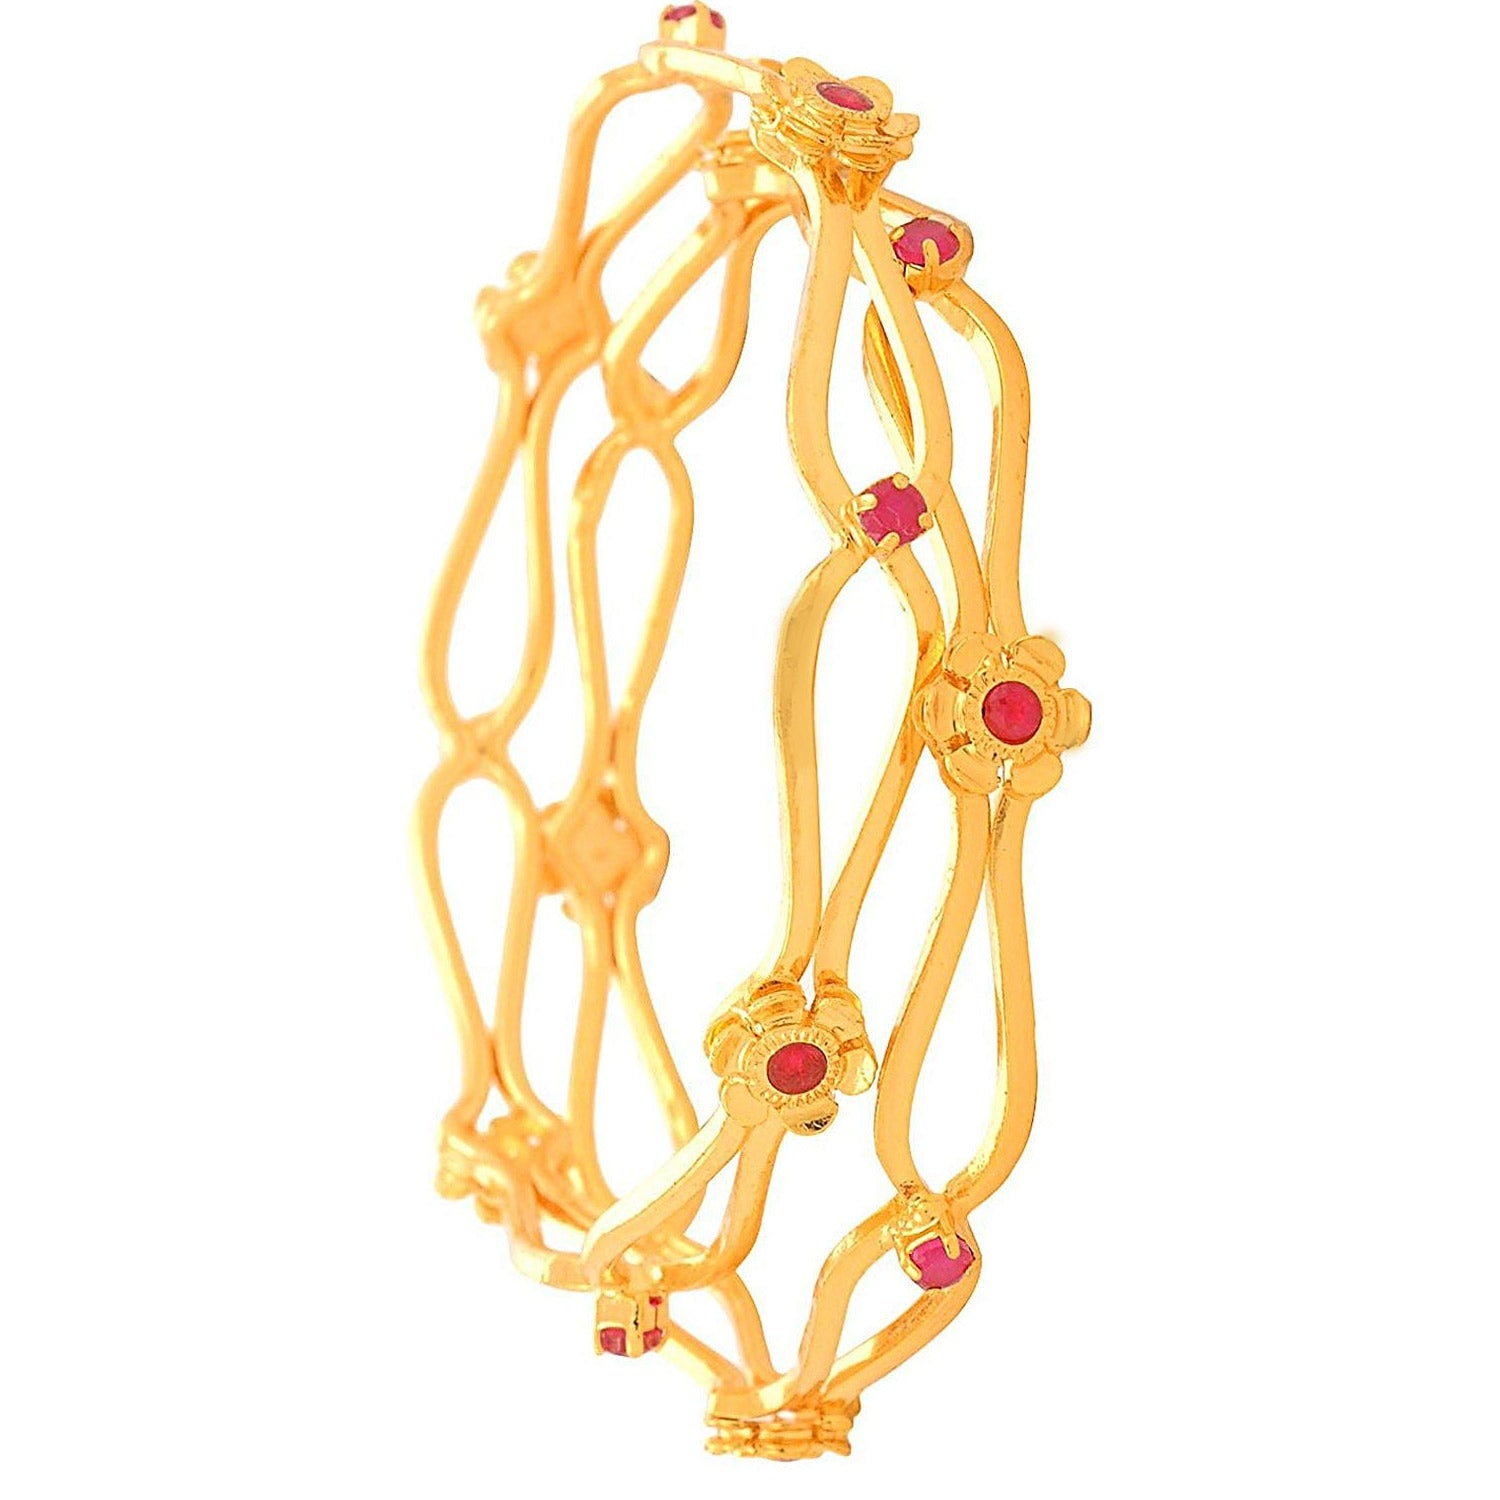 Traditional Floral One Gram Gold Plated Designer Bangles With Cz Diamonds.